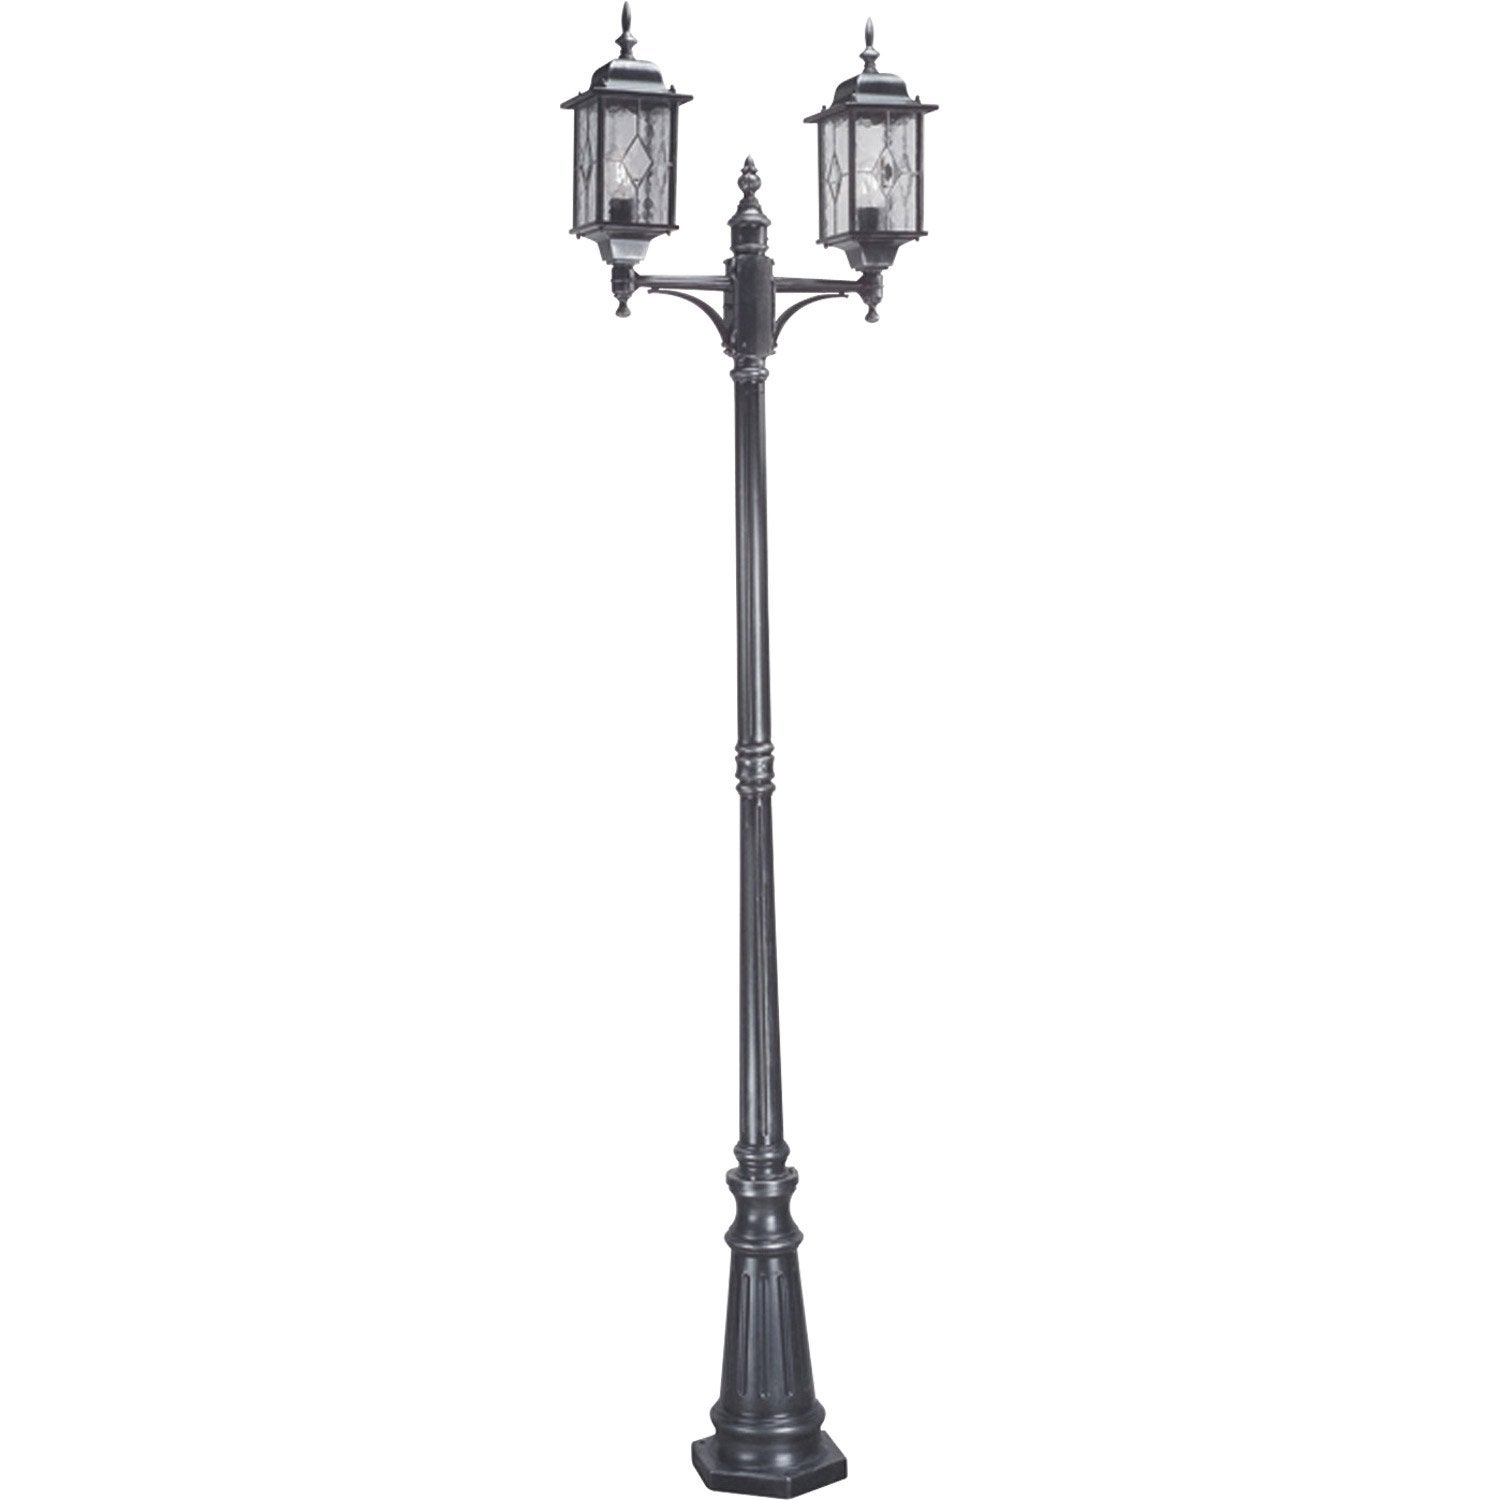 lampadaire ext rieur wexford e27 noir elstead leroy merlin. Black Bedroom Furniture Sets. Home Design Ideas